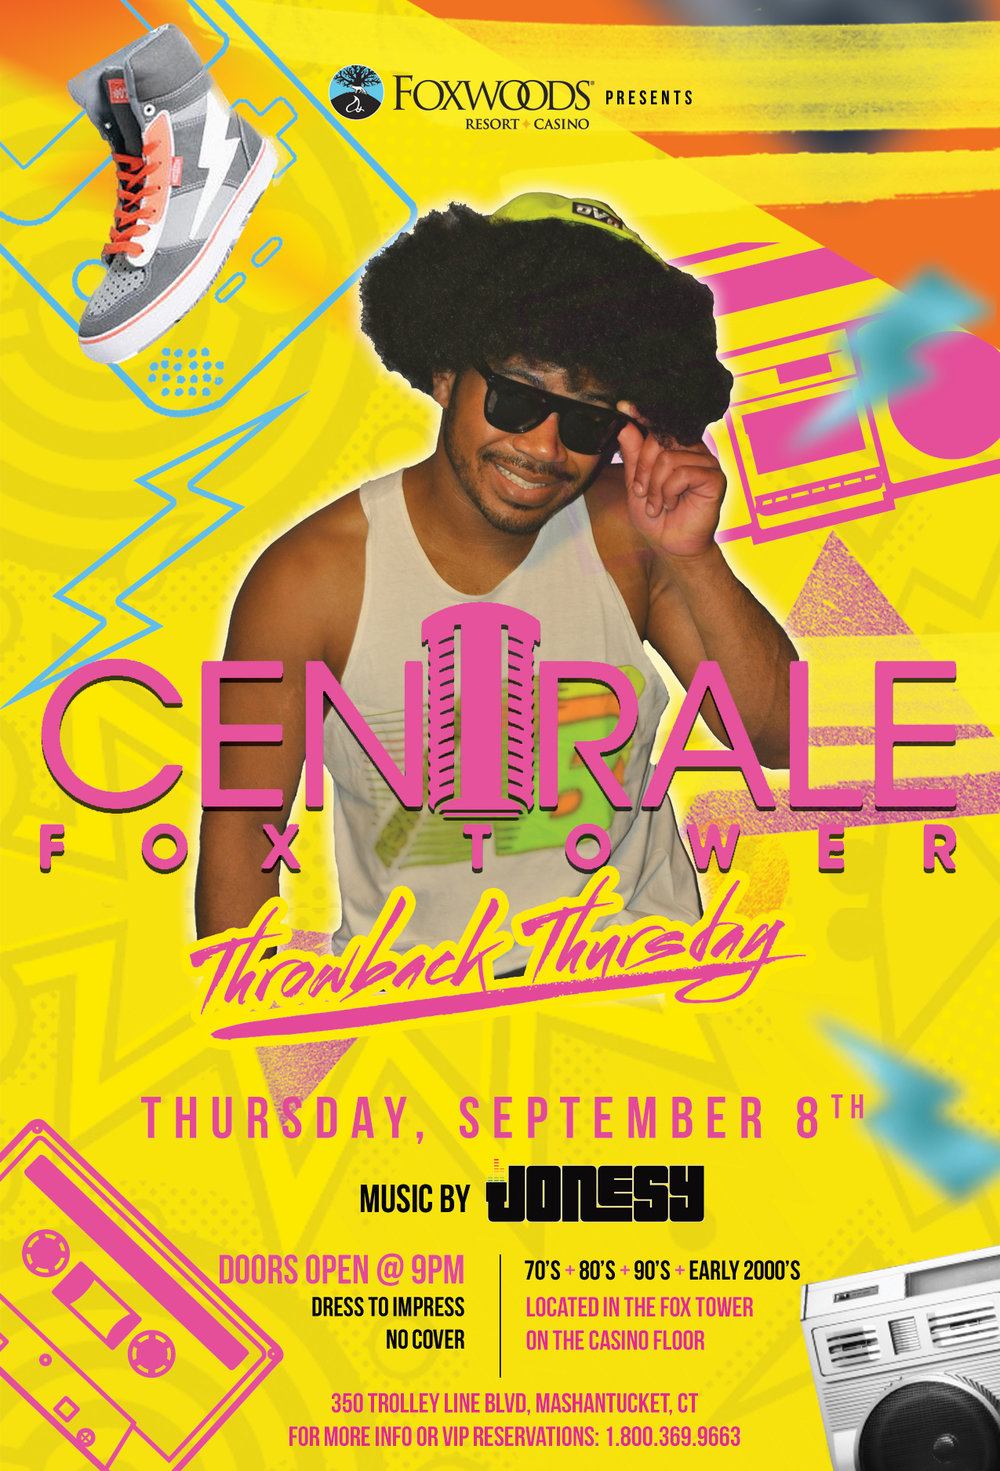 Thursday, September 8th meet me at Centrale Fox Tower @ Foxwoods Resort Casino for 'Throwback Thursday' with music by yours truly 9pm-close.  Spinning all the best hits from the 70's, 80's, 90's & early 2000's.  Dress to impress + no cover, hope to see everyone there!